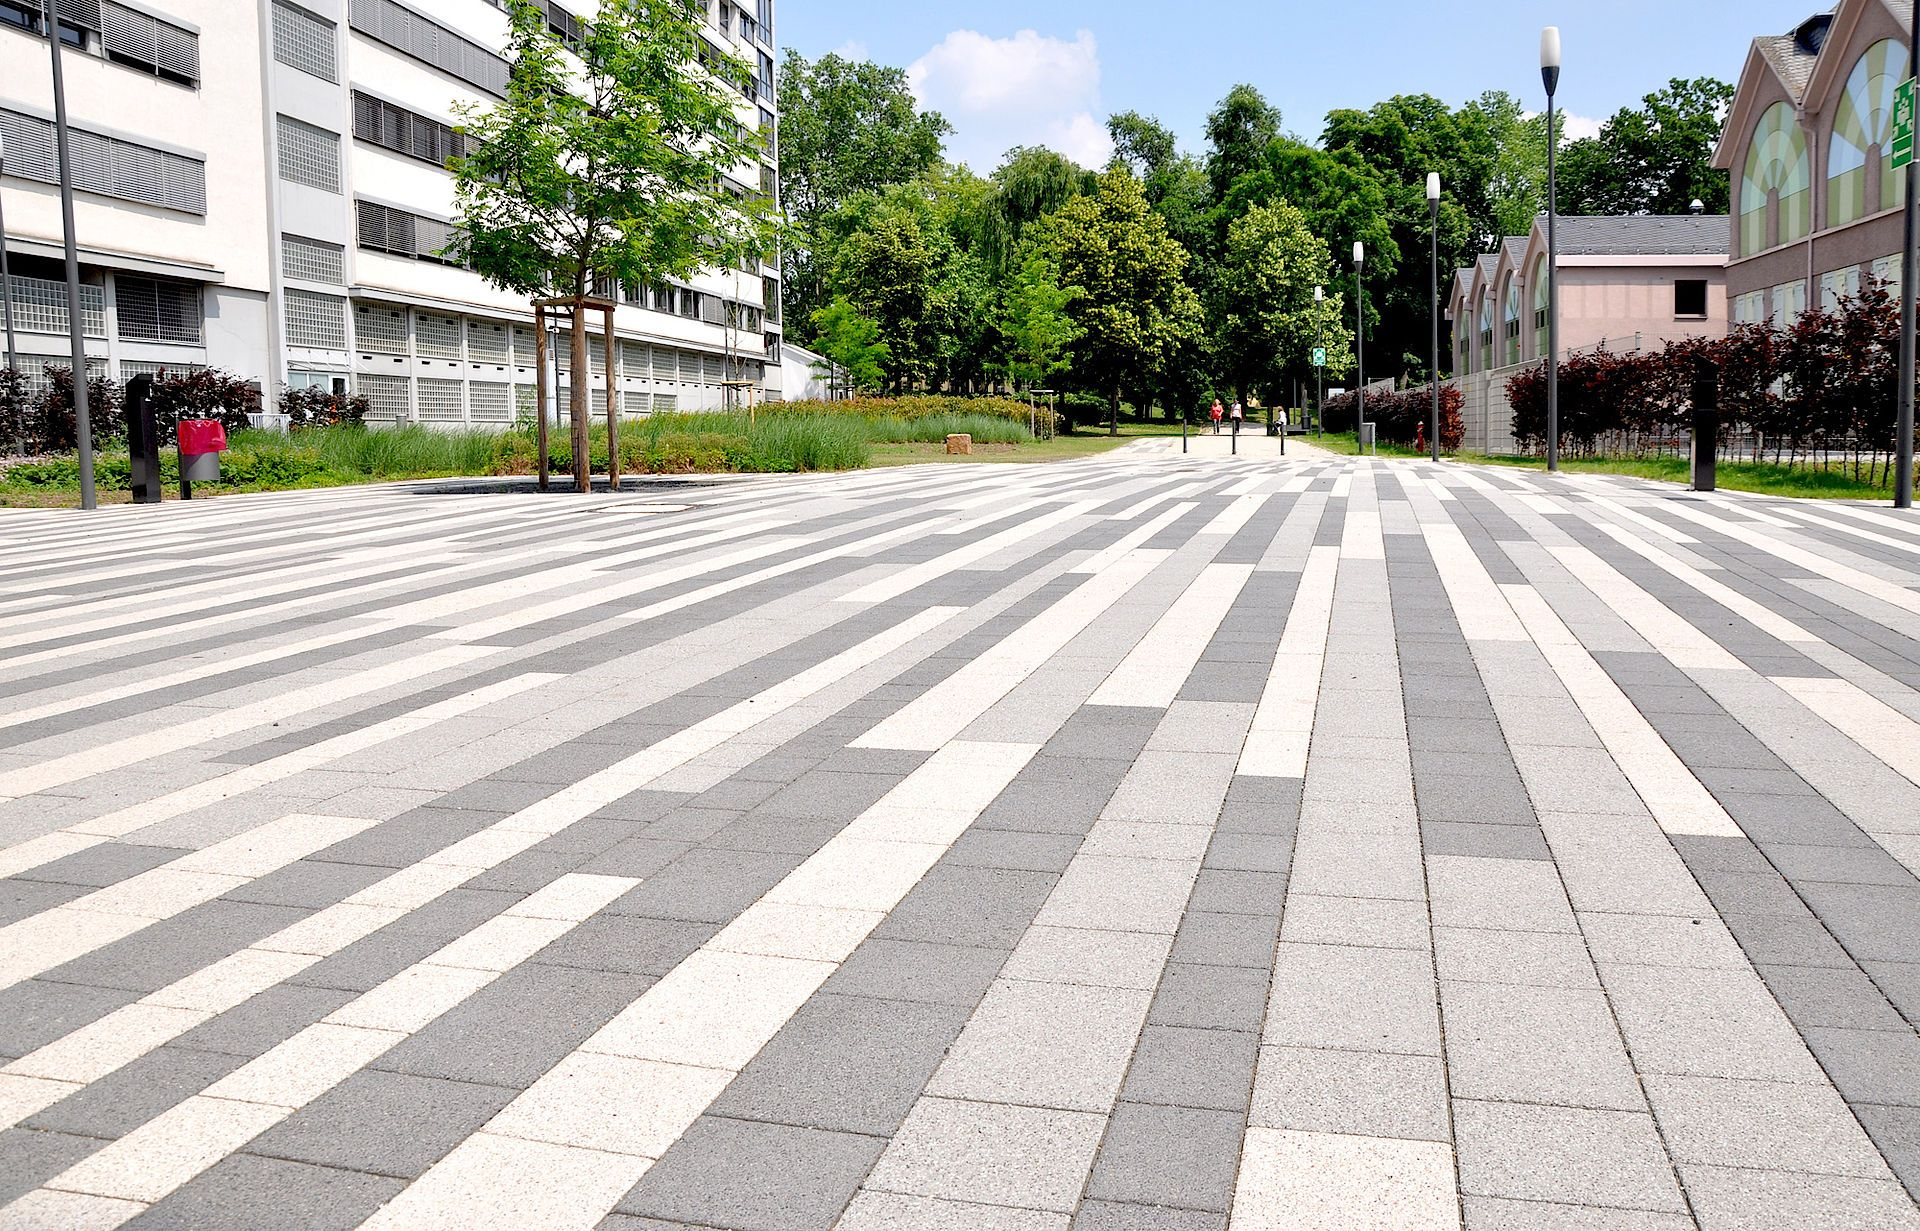 Source Bierbaum Aichele Landschaftsarchitekten Part Gmbb Partnerschaftsgesellschaft Klaus Diete Pavement Design Paving Design Landscape Architecture